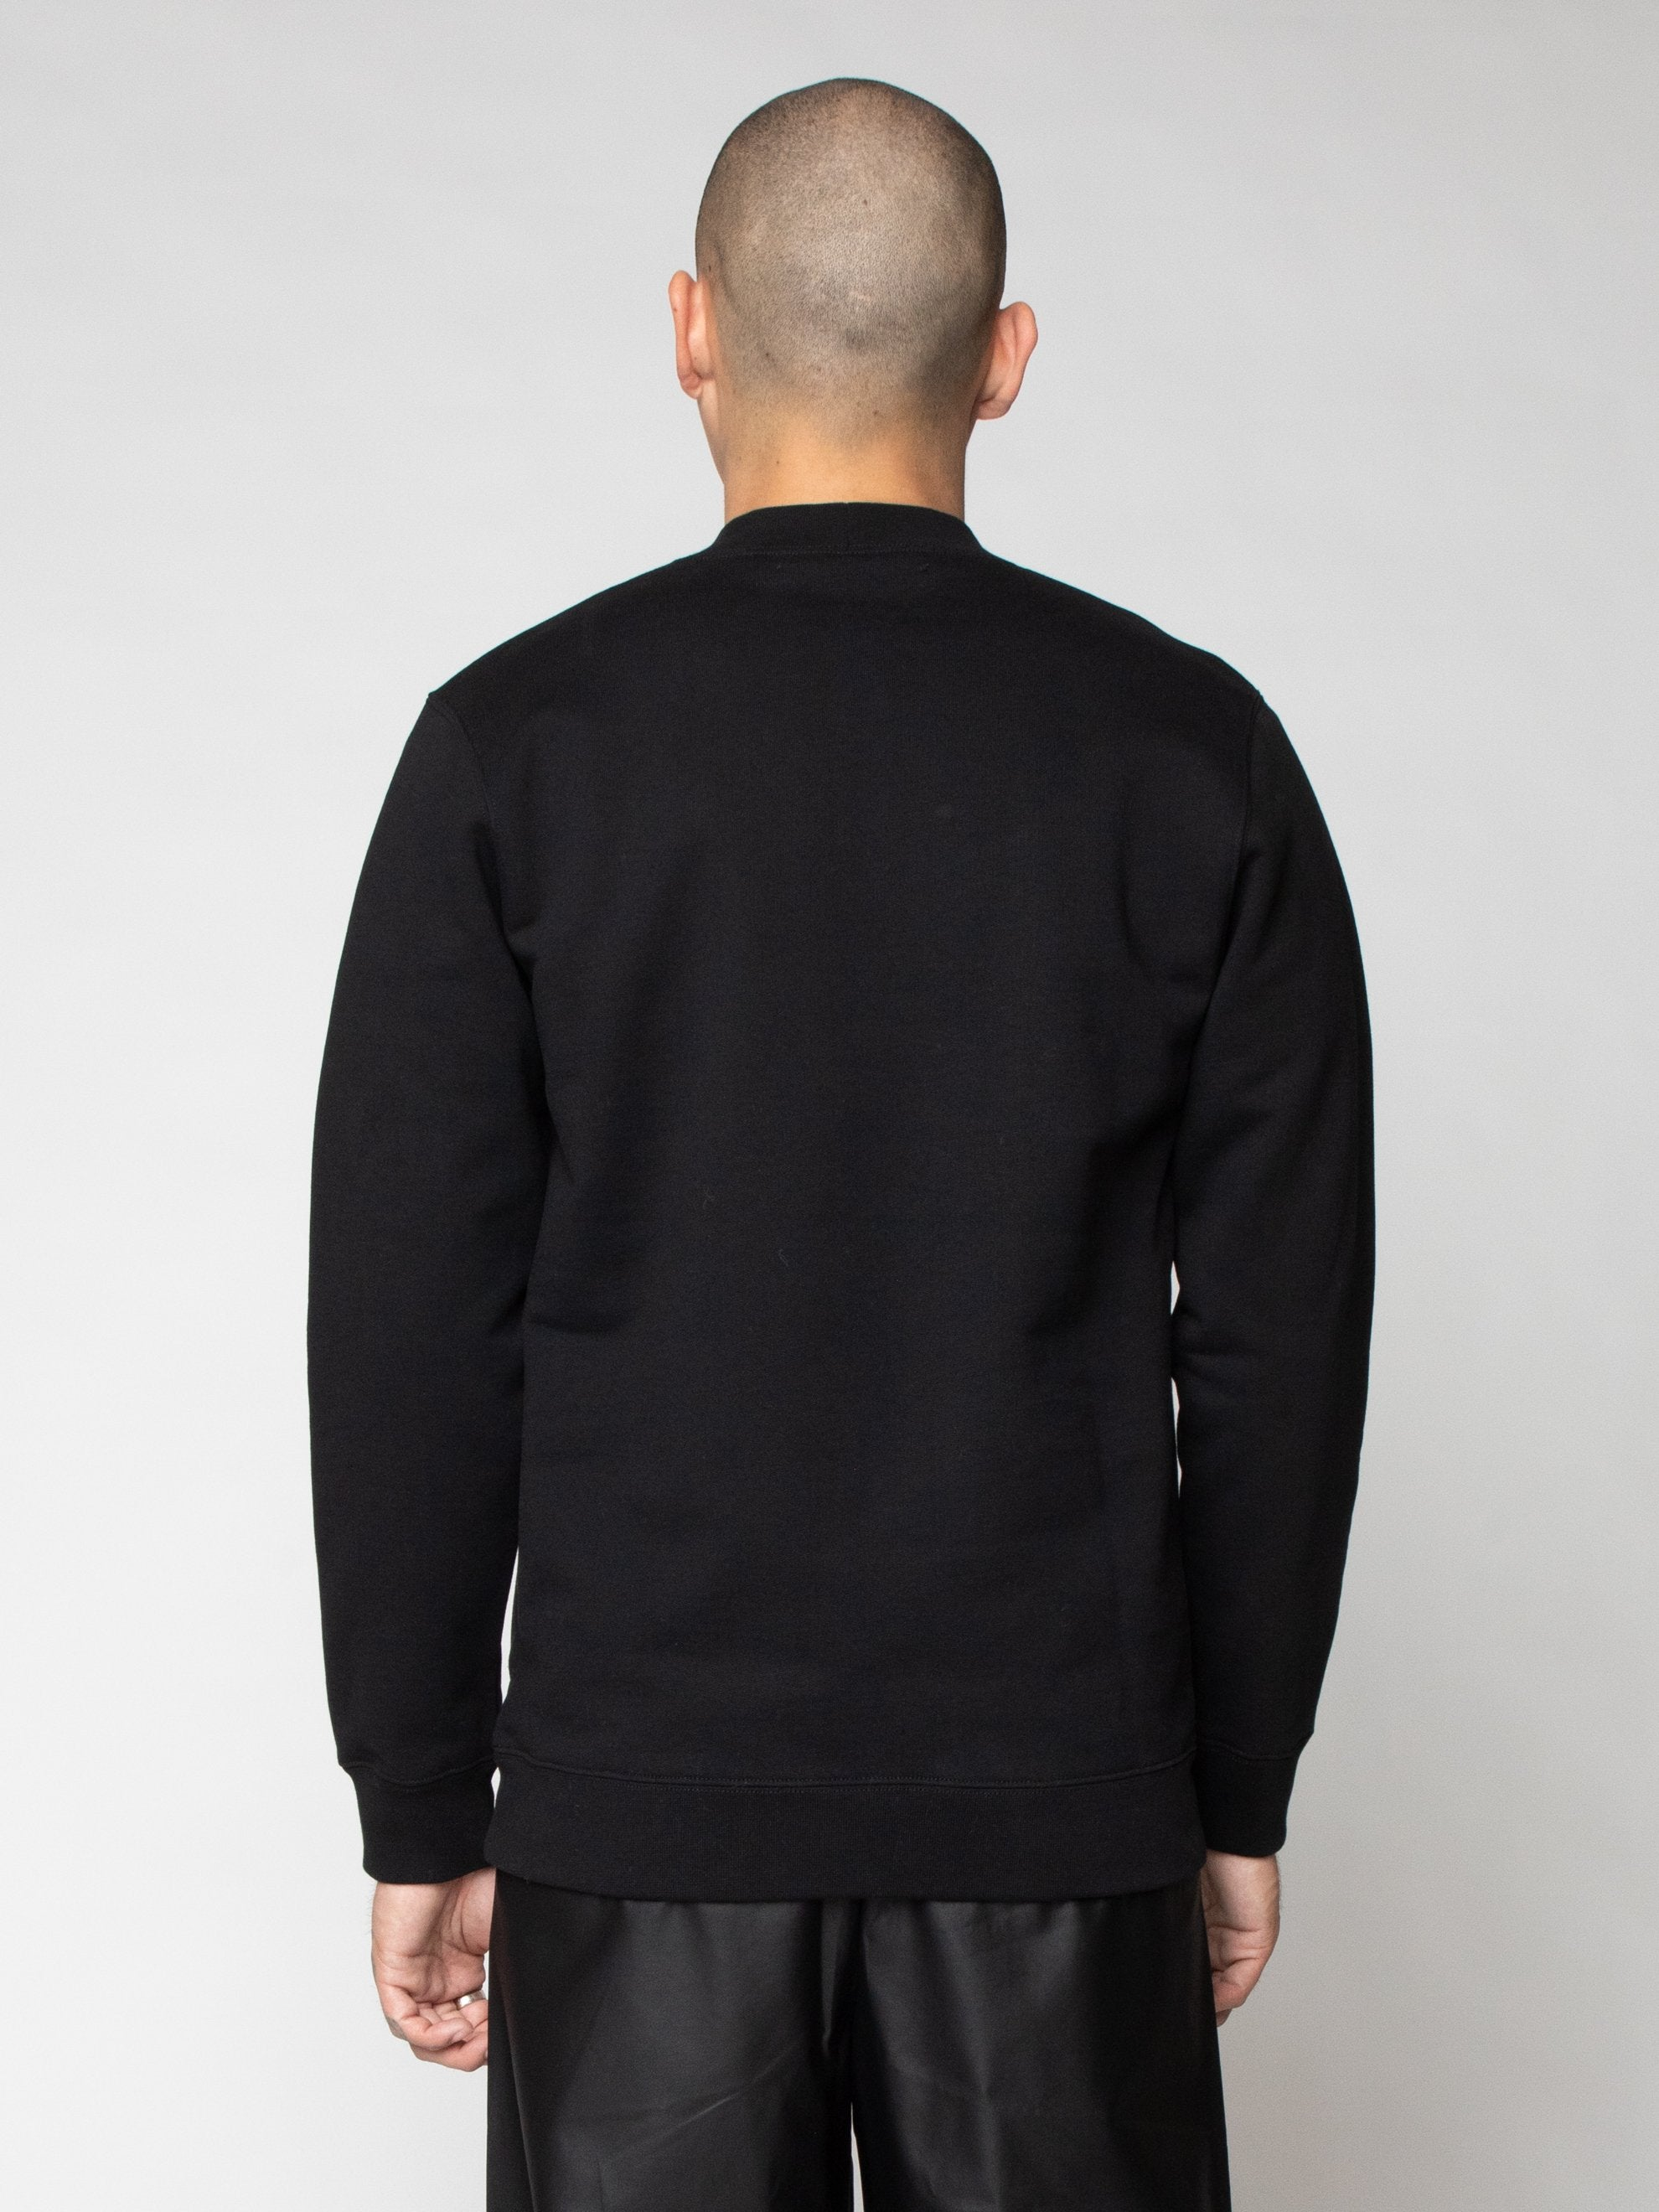 Black Basic Sweater With Sterling Patches 6